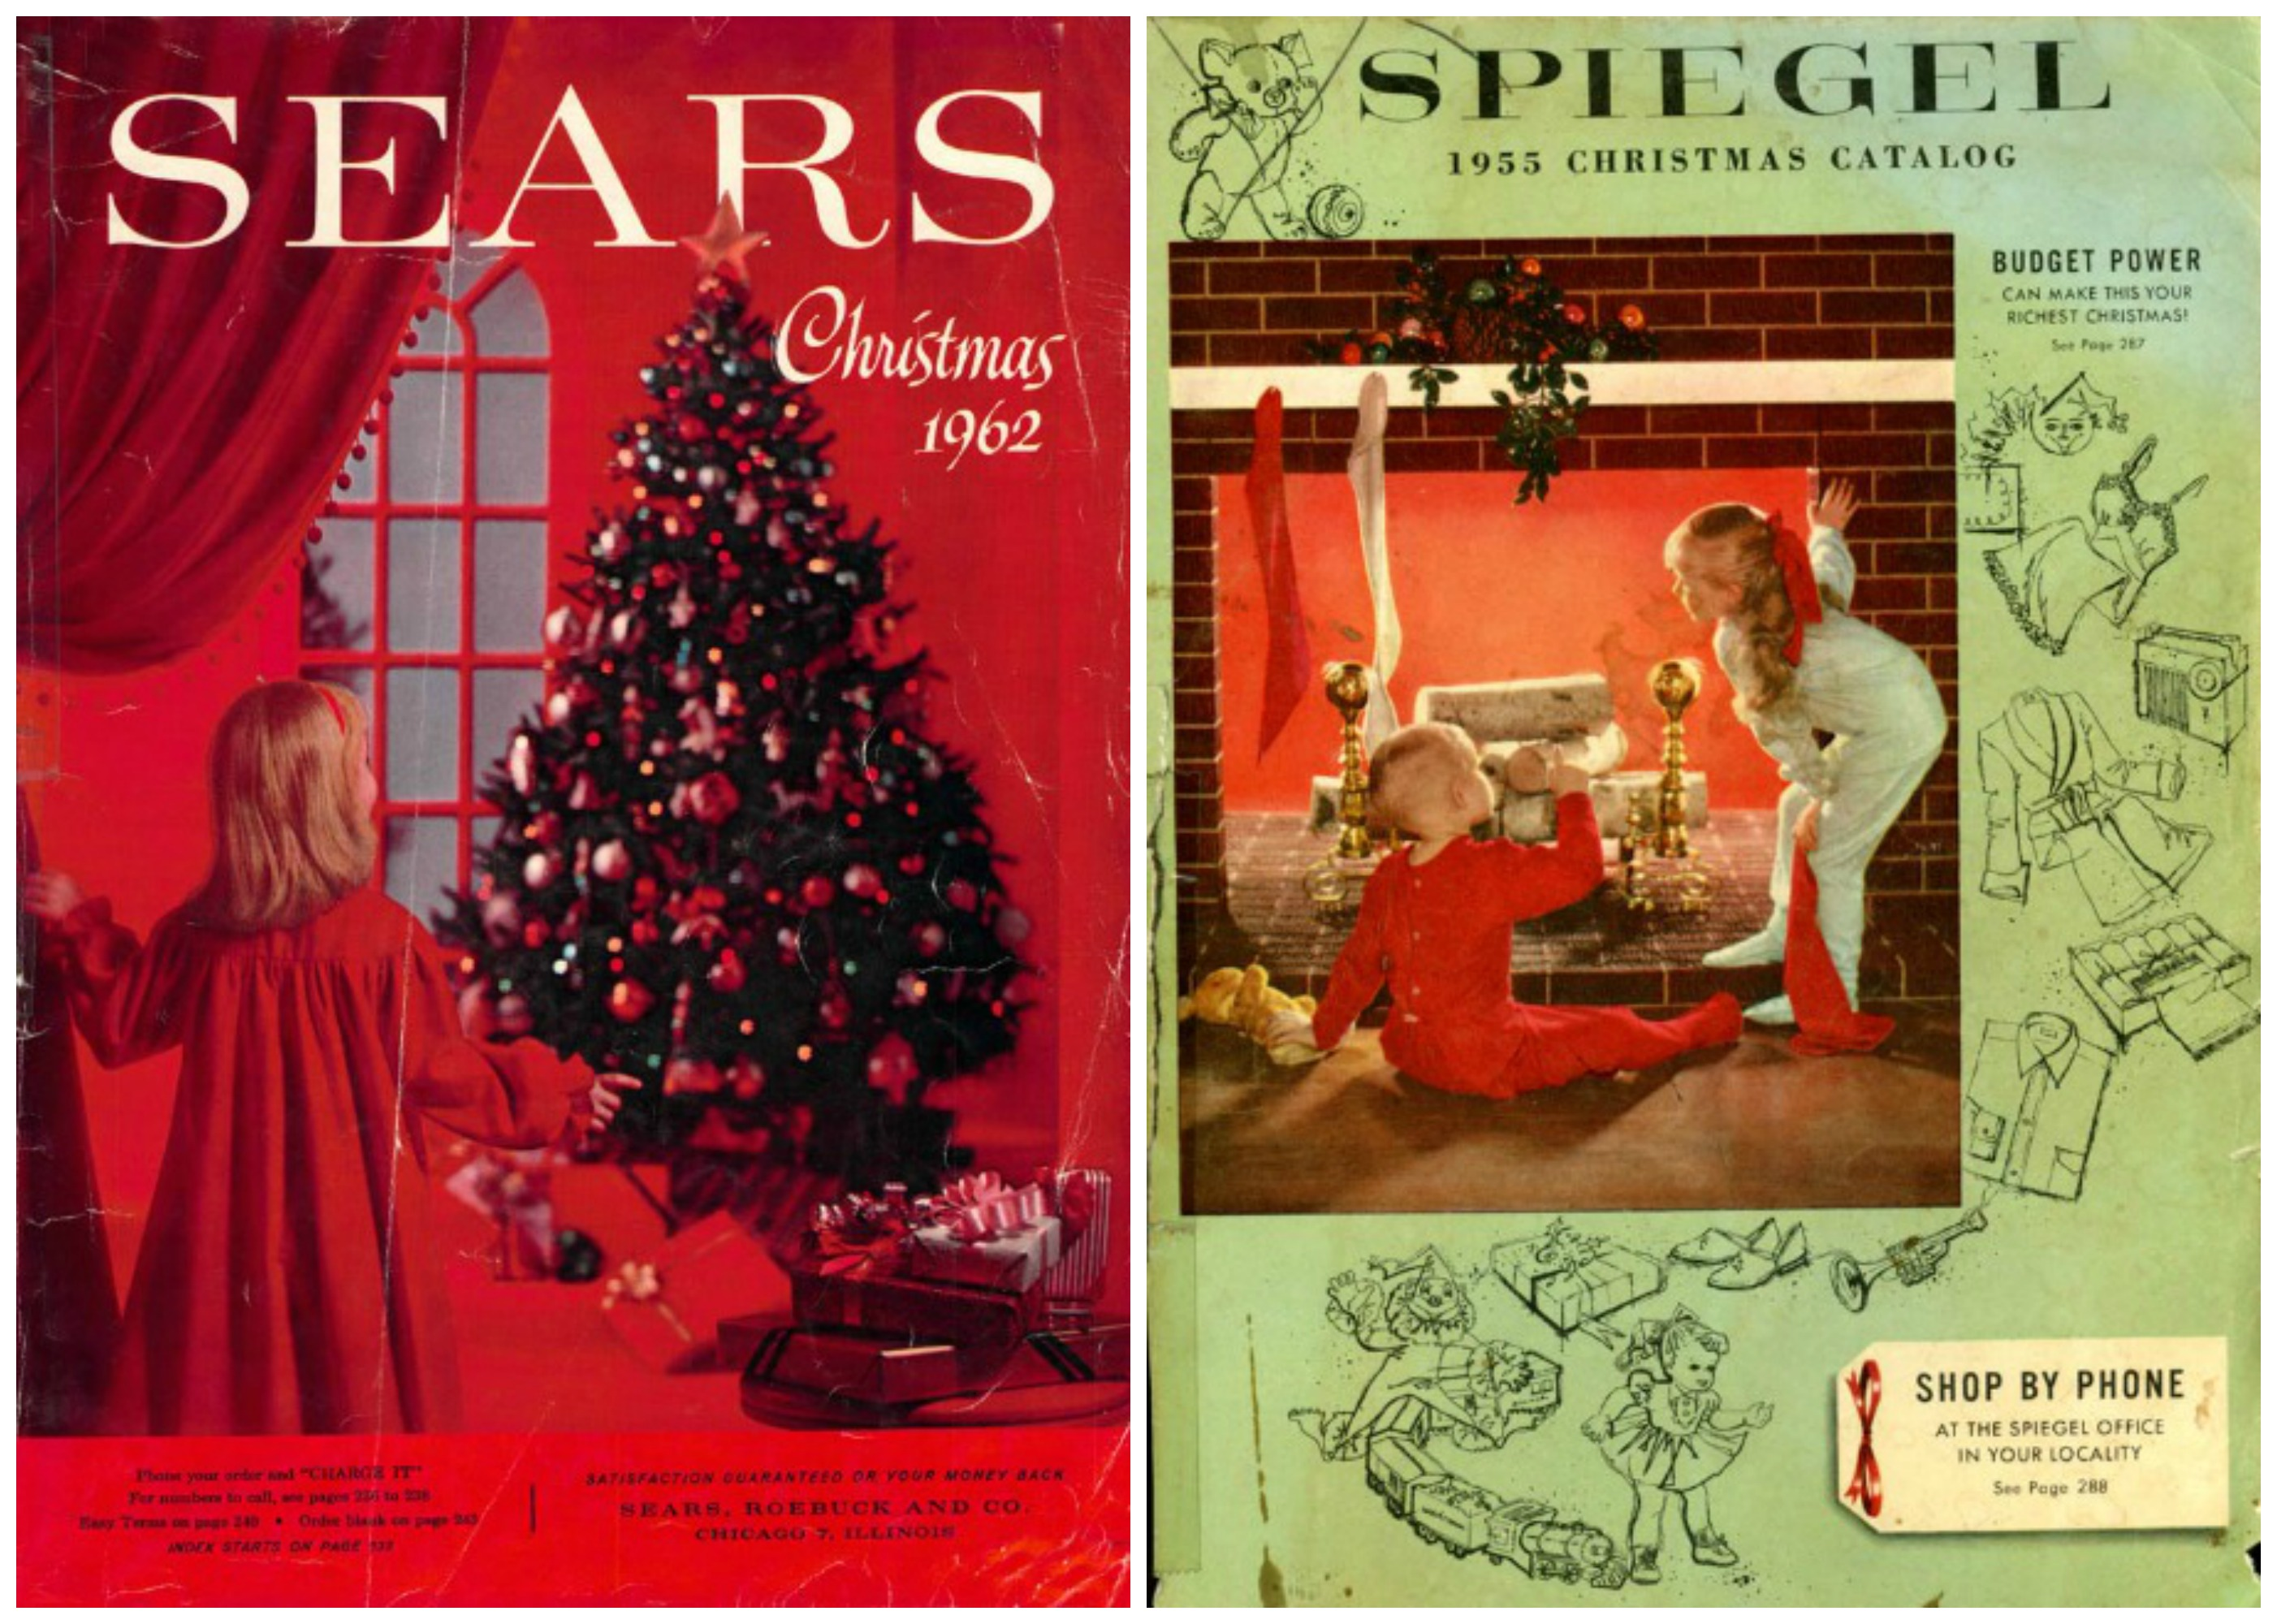 Xmas catalogs sears spiegel envisioning the